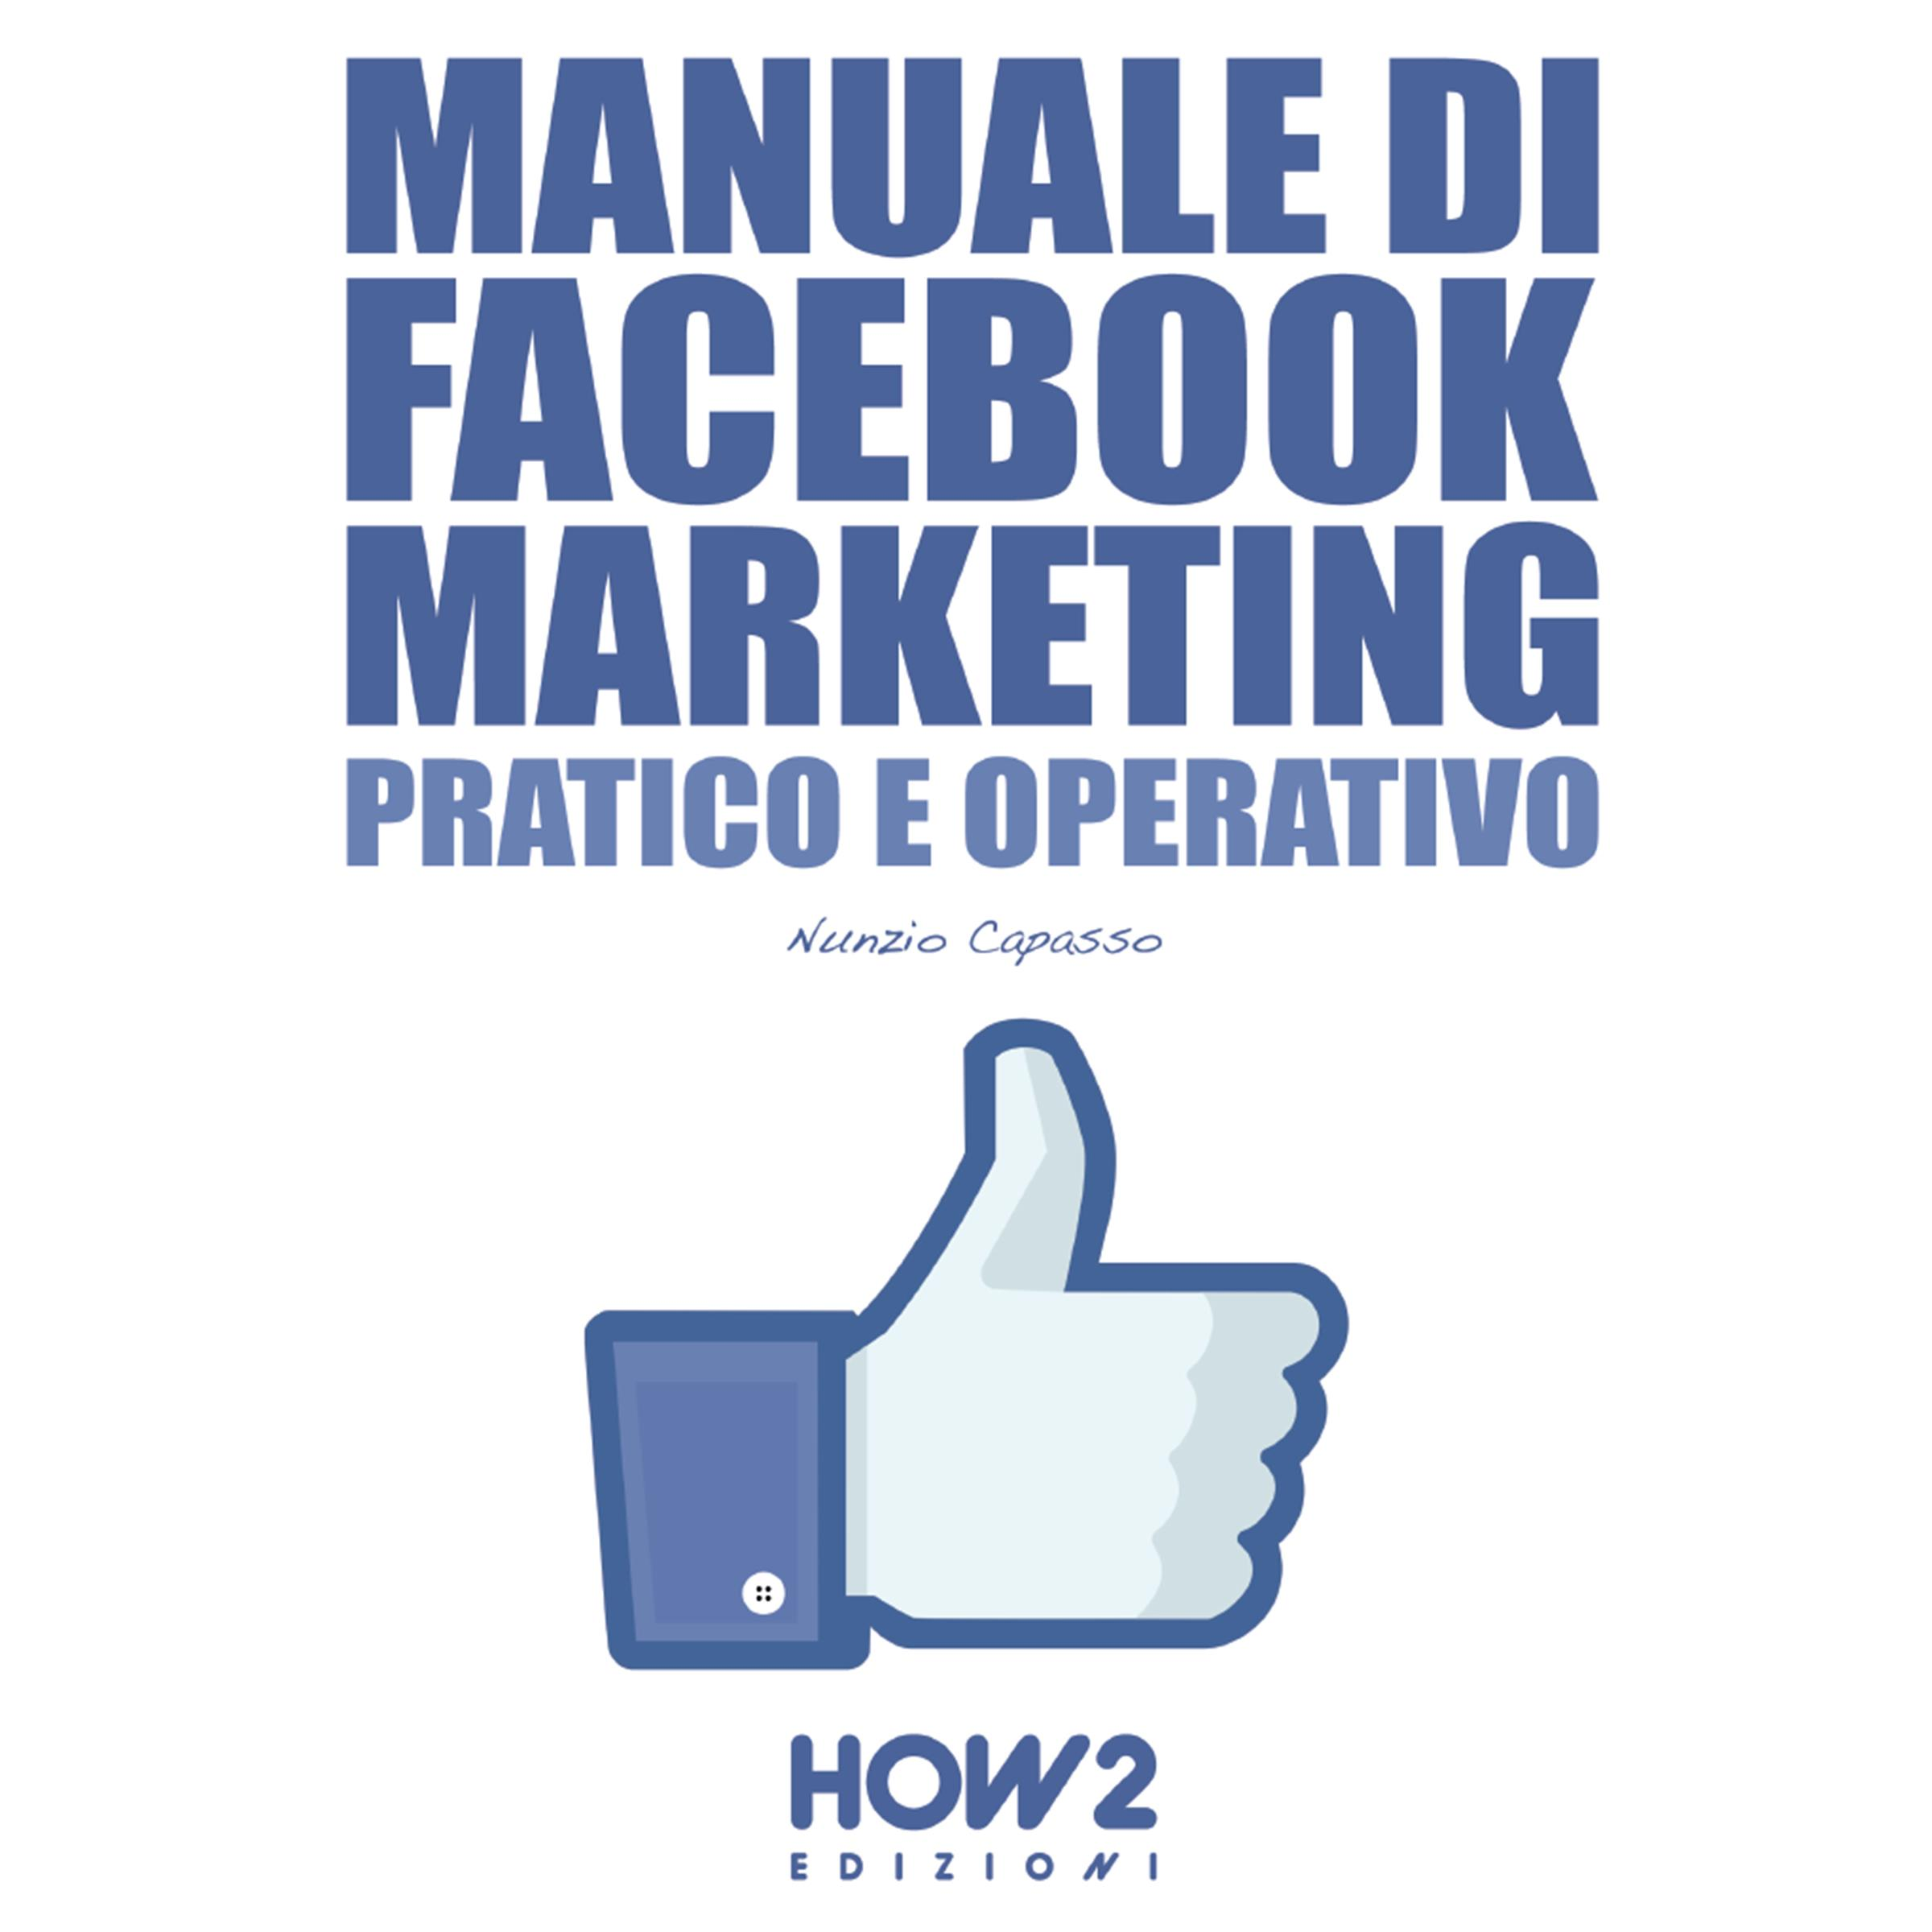 Manuale di Facebook Marketing